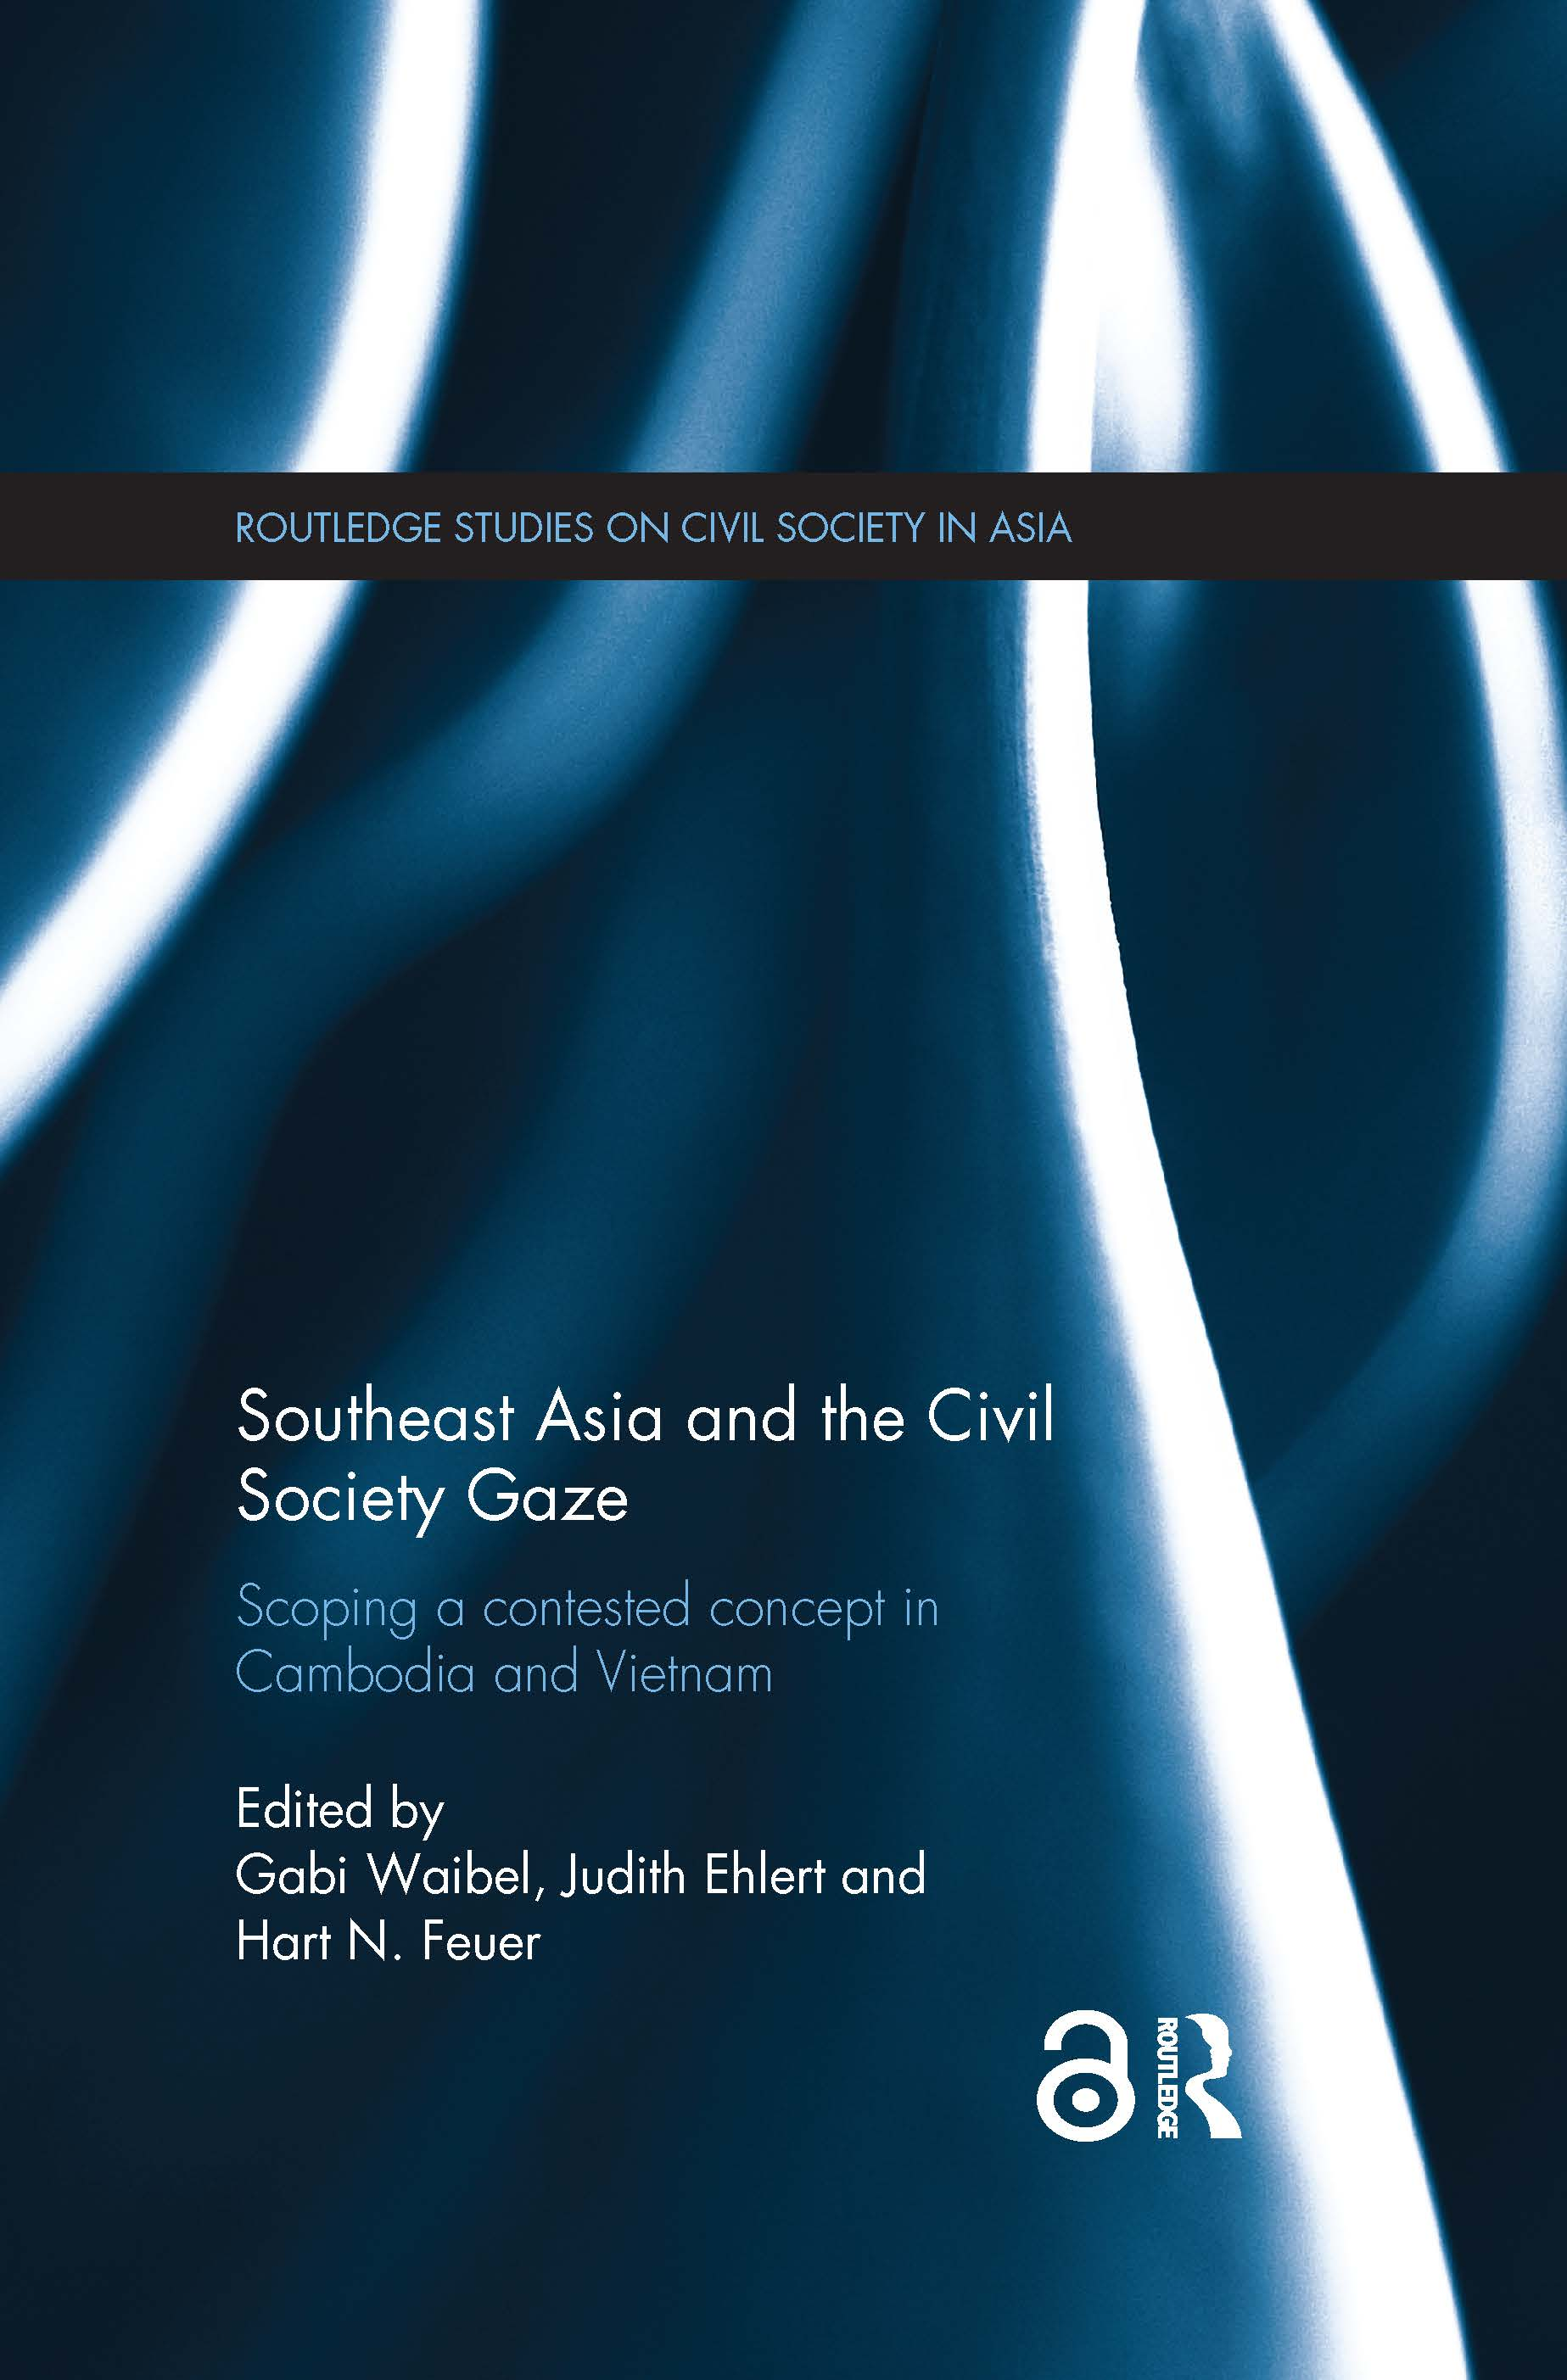 Southeast Asia and the Civil Society Gaze: Scoping a Contested Concept in Cambodia and Vietnam book cover